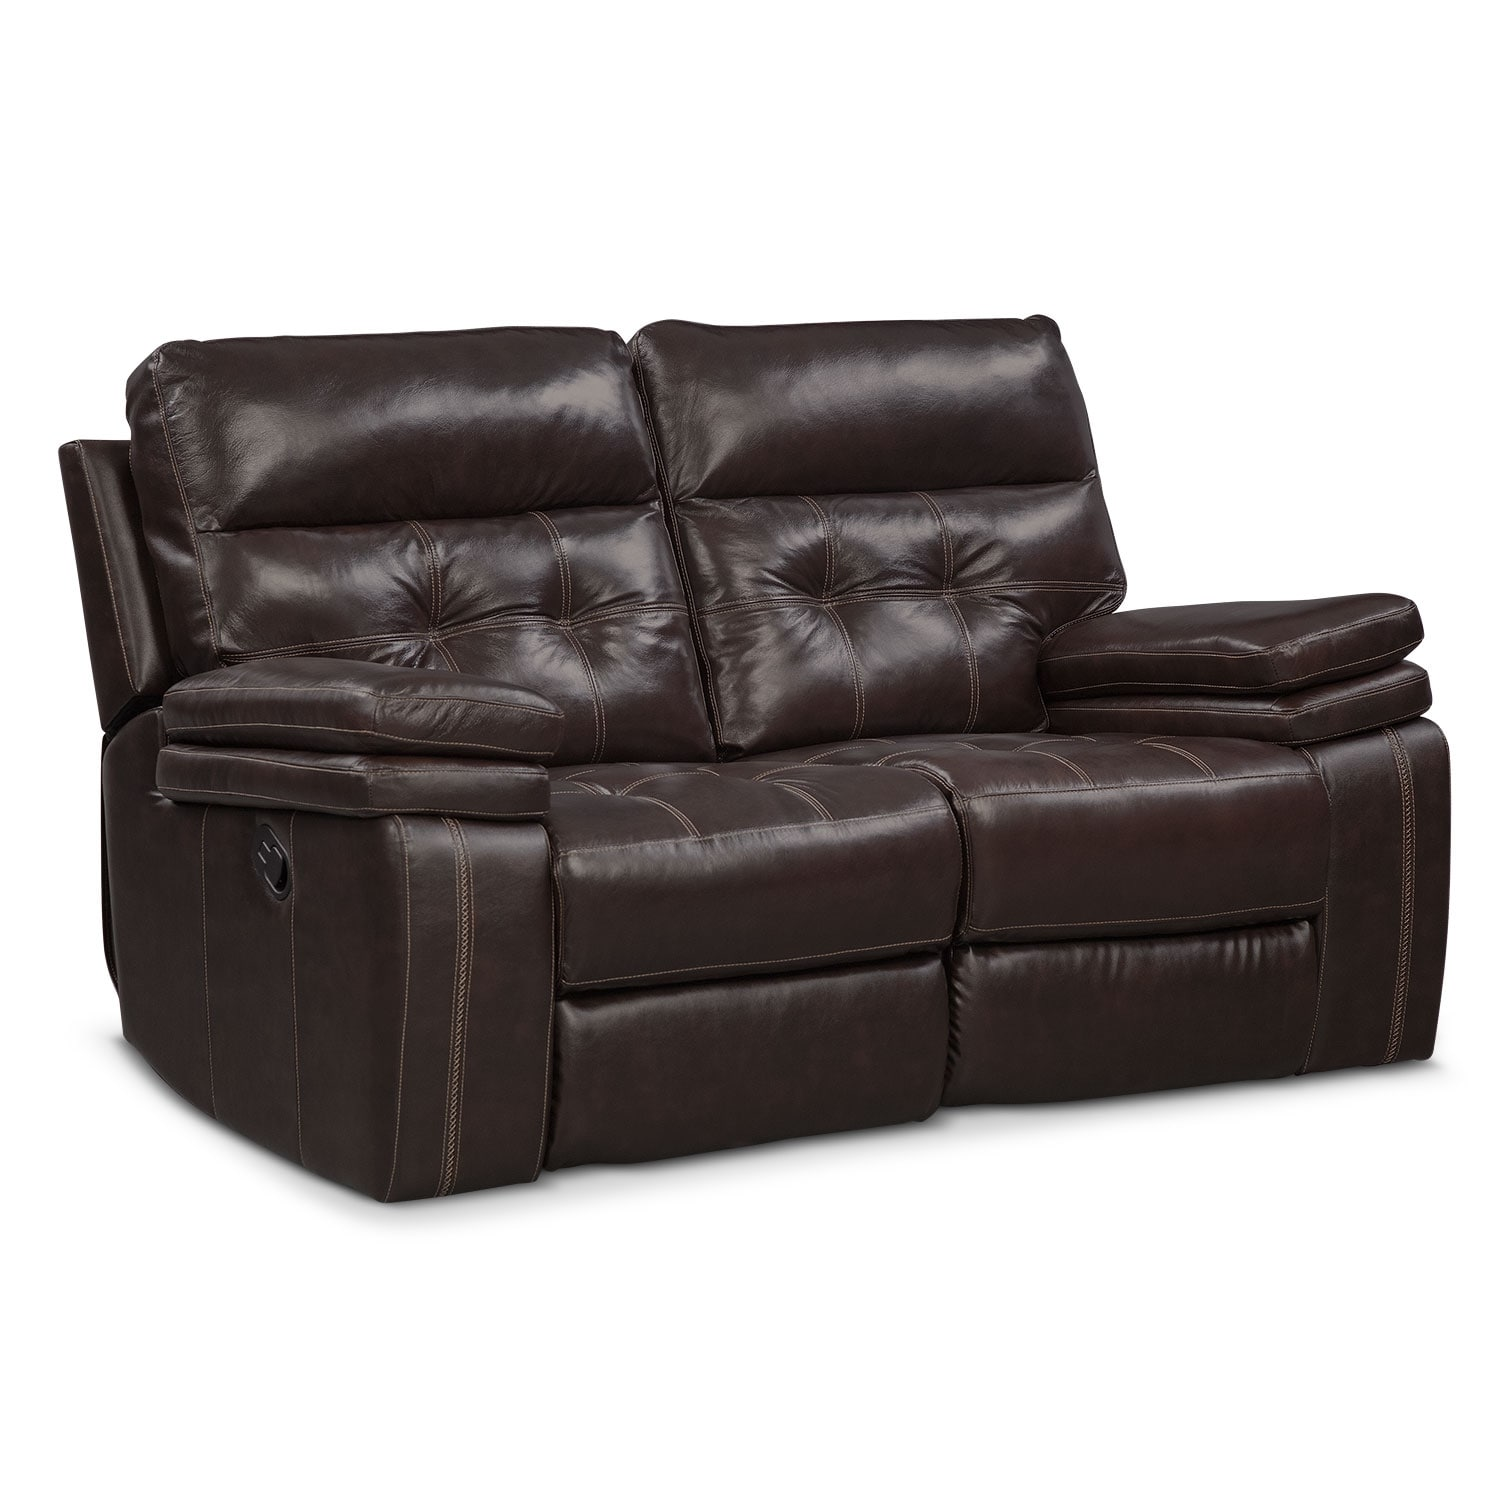 Brisco Brown Manual Reclining Loveseat